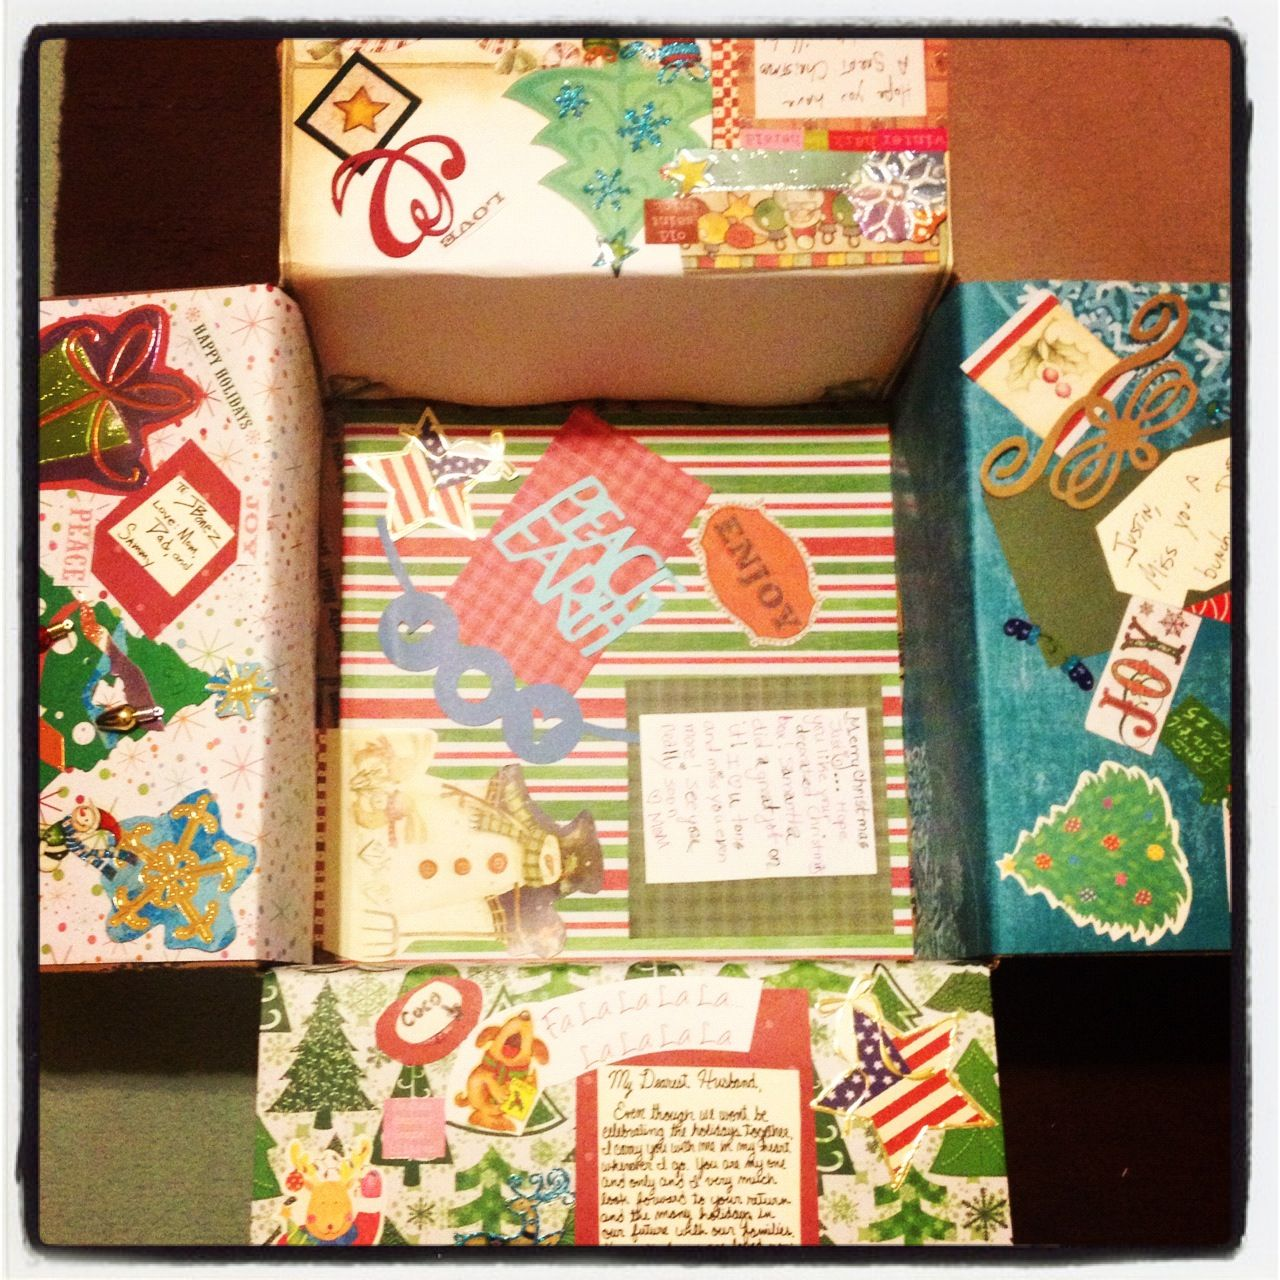 Ideas To Decorate A Box Christmas Deployment Care Package Decorated Box For Husband  Diy